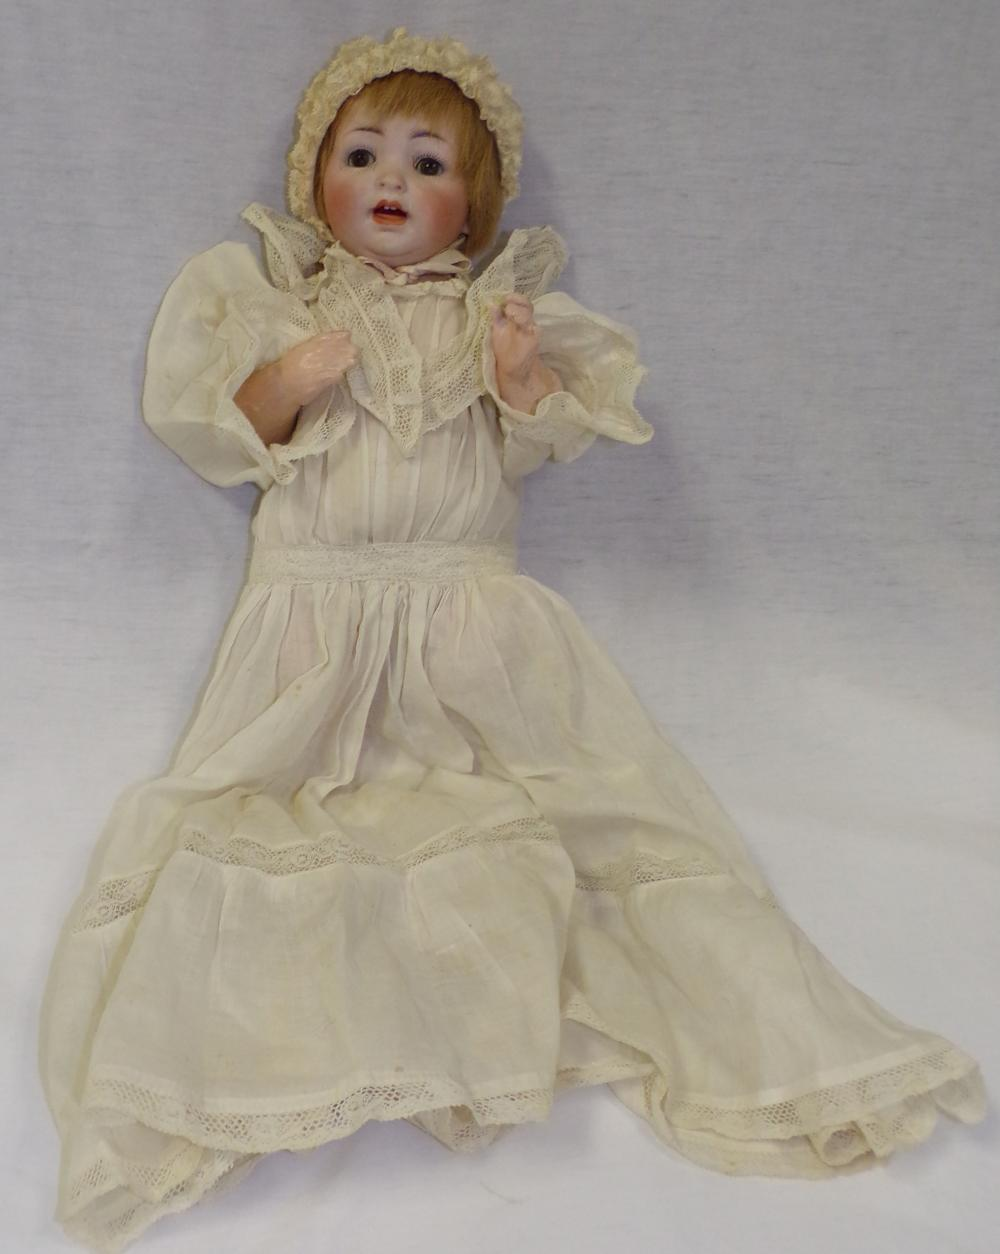 Vintage bisque head doll with jointed composition body dressed in lace dress & cap, marked Made in Germany #152/4, composition legs showing wear & line crack, approx. 13'' L